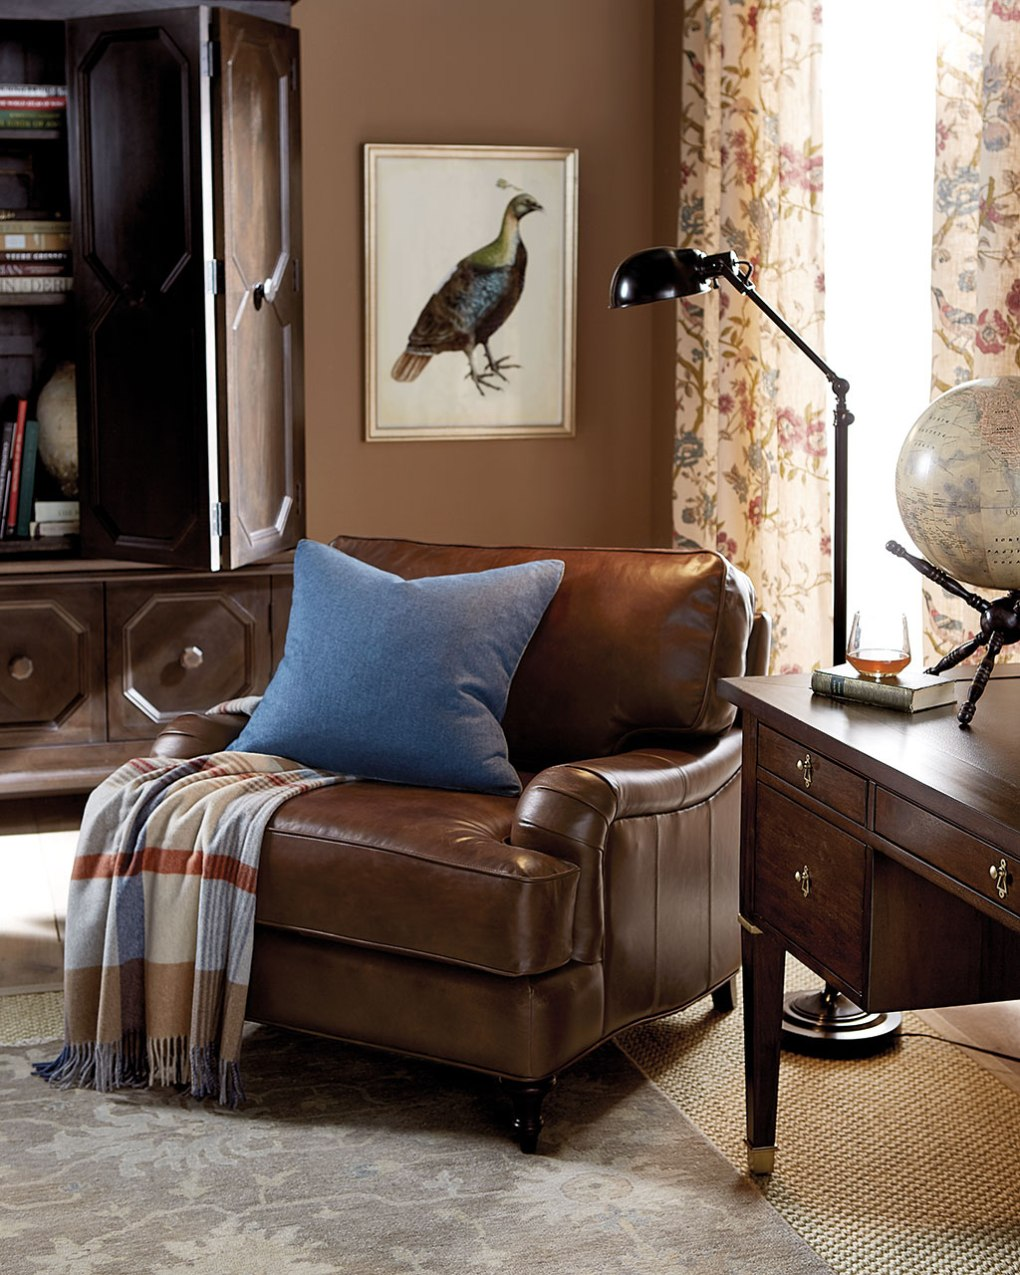 A chocolate colored leather furniture chair in a living room